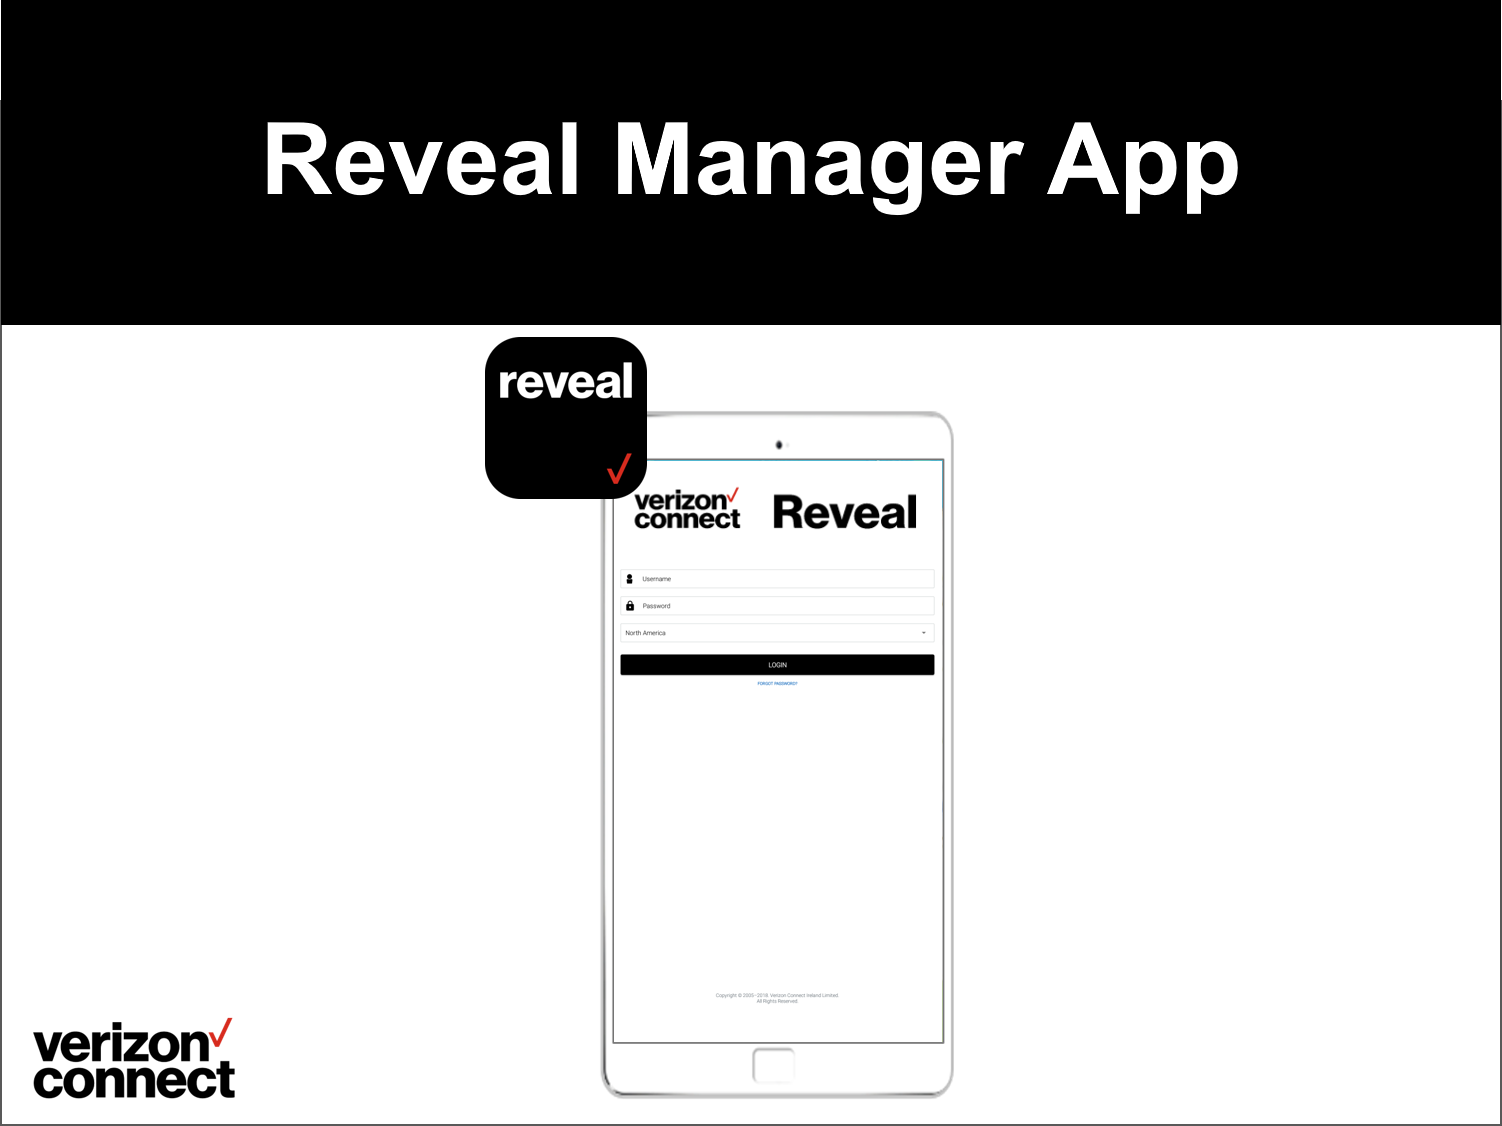 Reveal Manager App eTutorial